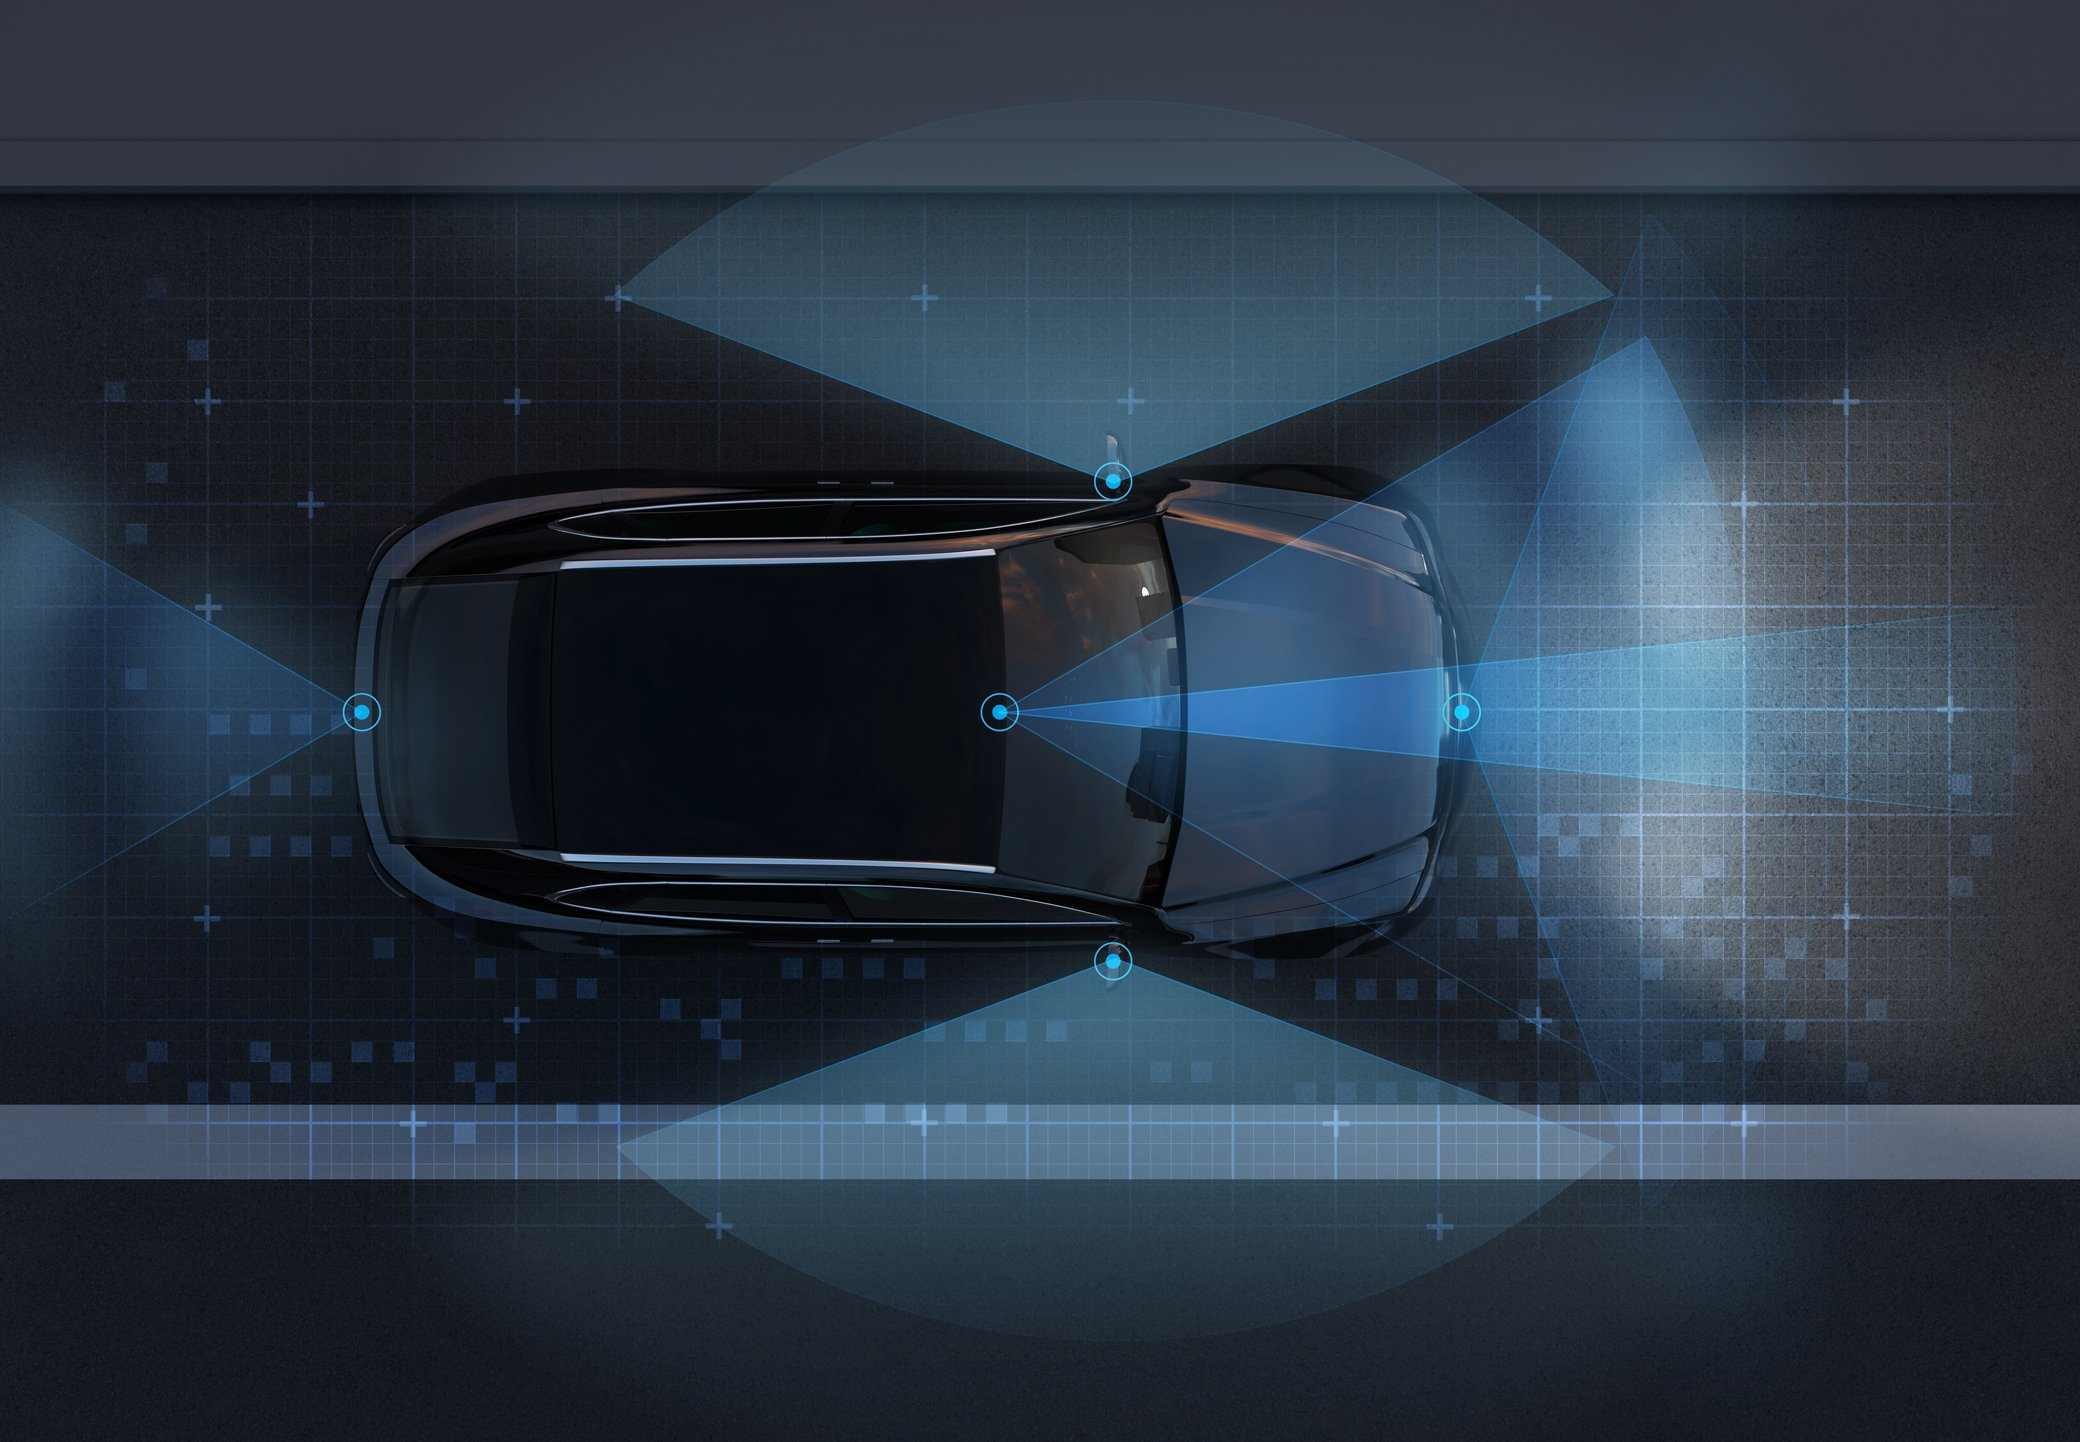 Consumer safety rating for automated driving systems in development